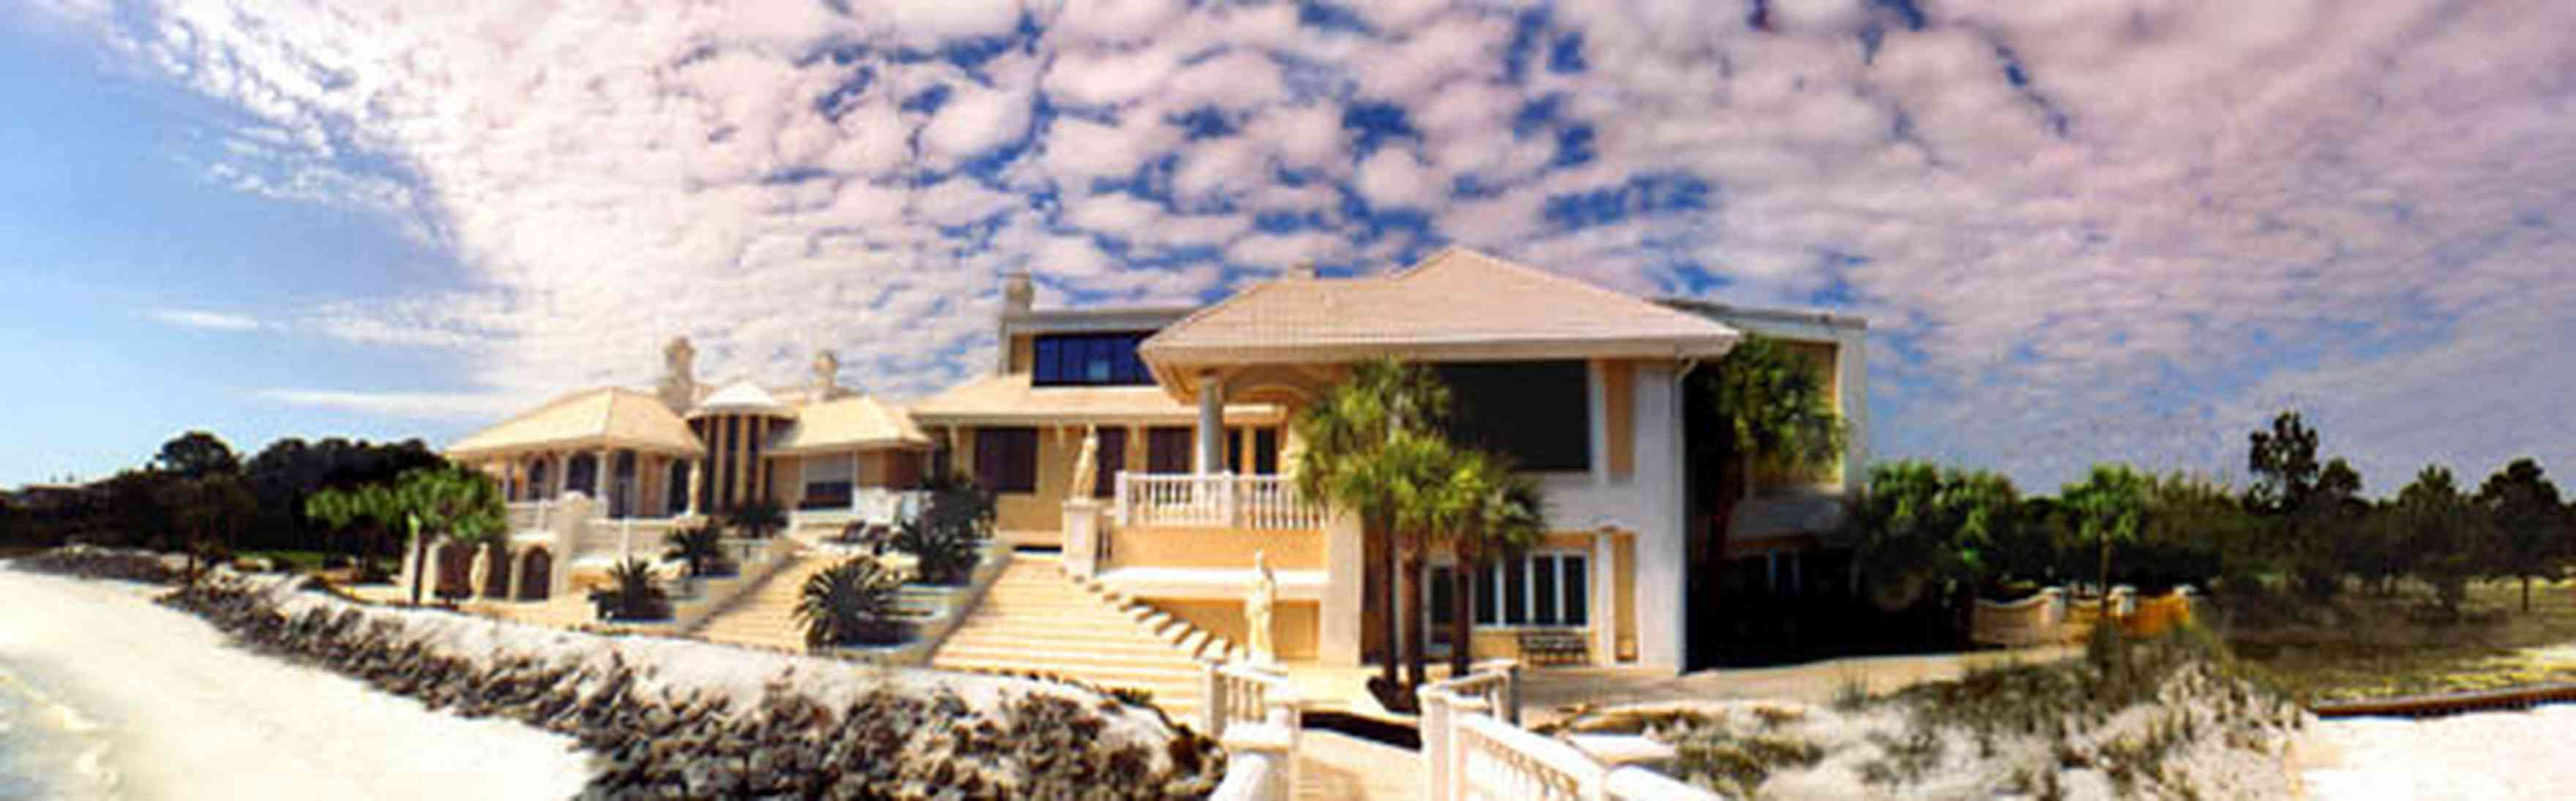 Gulf-Breeze:-Levin-House_01a.jpg:  cirrus clouds, mansion, italienate mansion, beach, bay, greek statues, palm trees